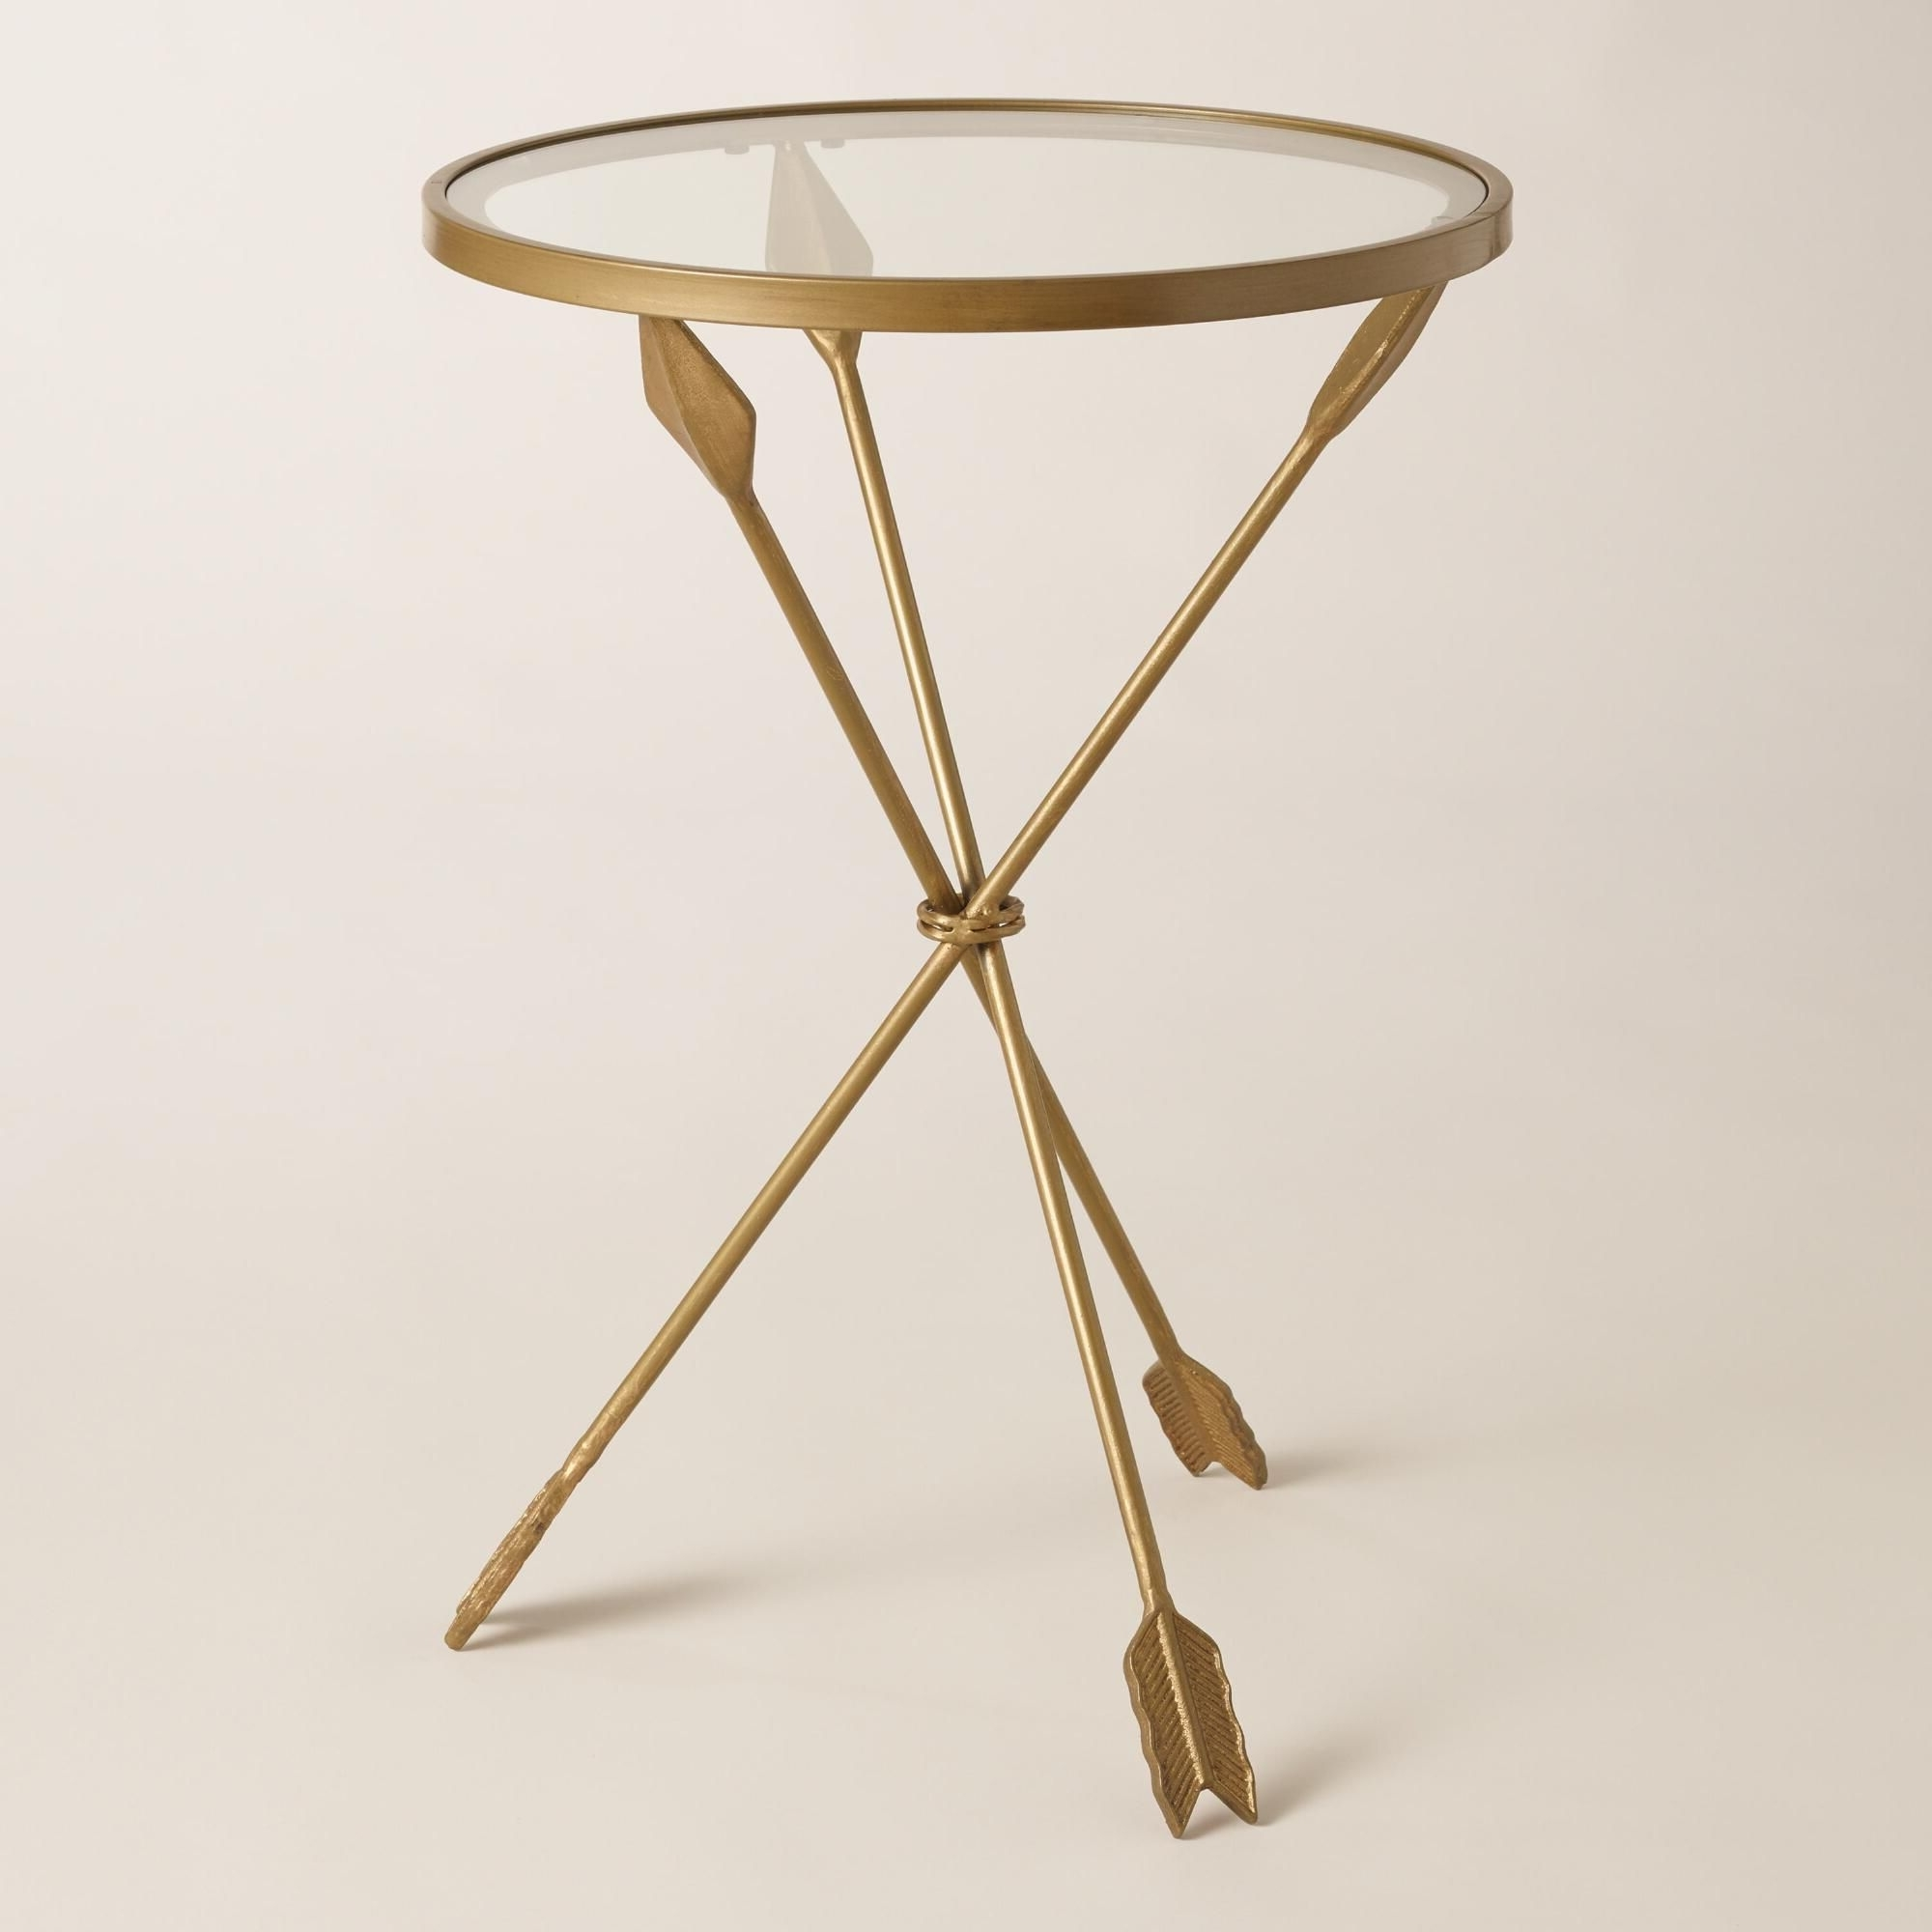 Distressed Gold Arrows Create The Tripod Base Of Our Side Table, A With 2018 Jackson Marble Side Tables (View 4 of 20)